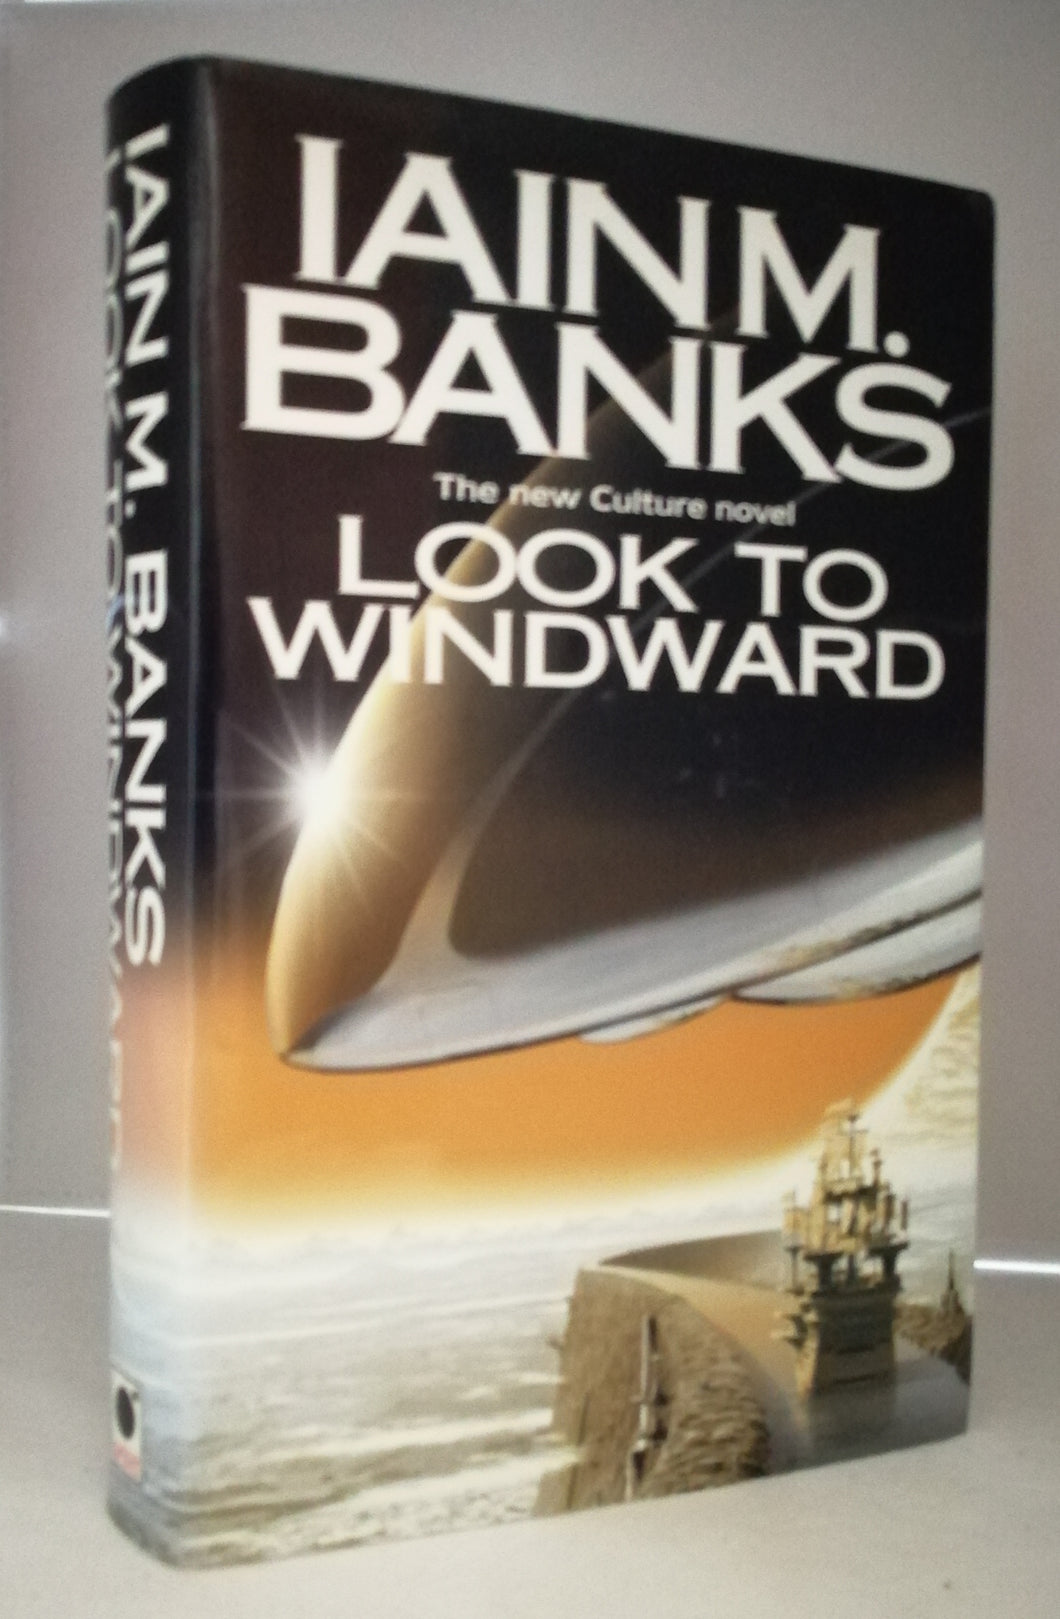 Look to Windward: The New Culture Novel by Iain M. Banks